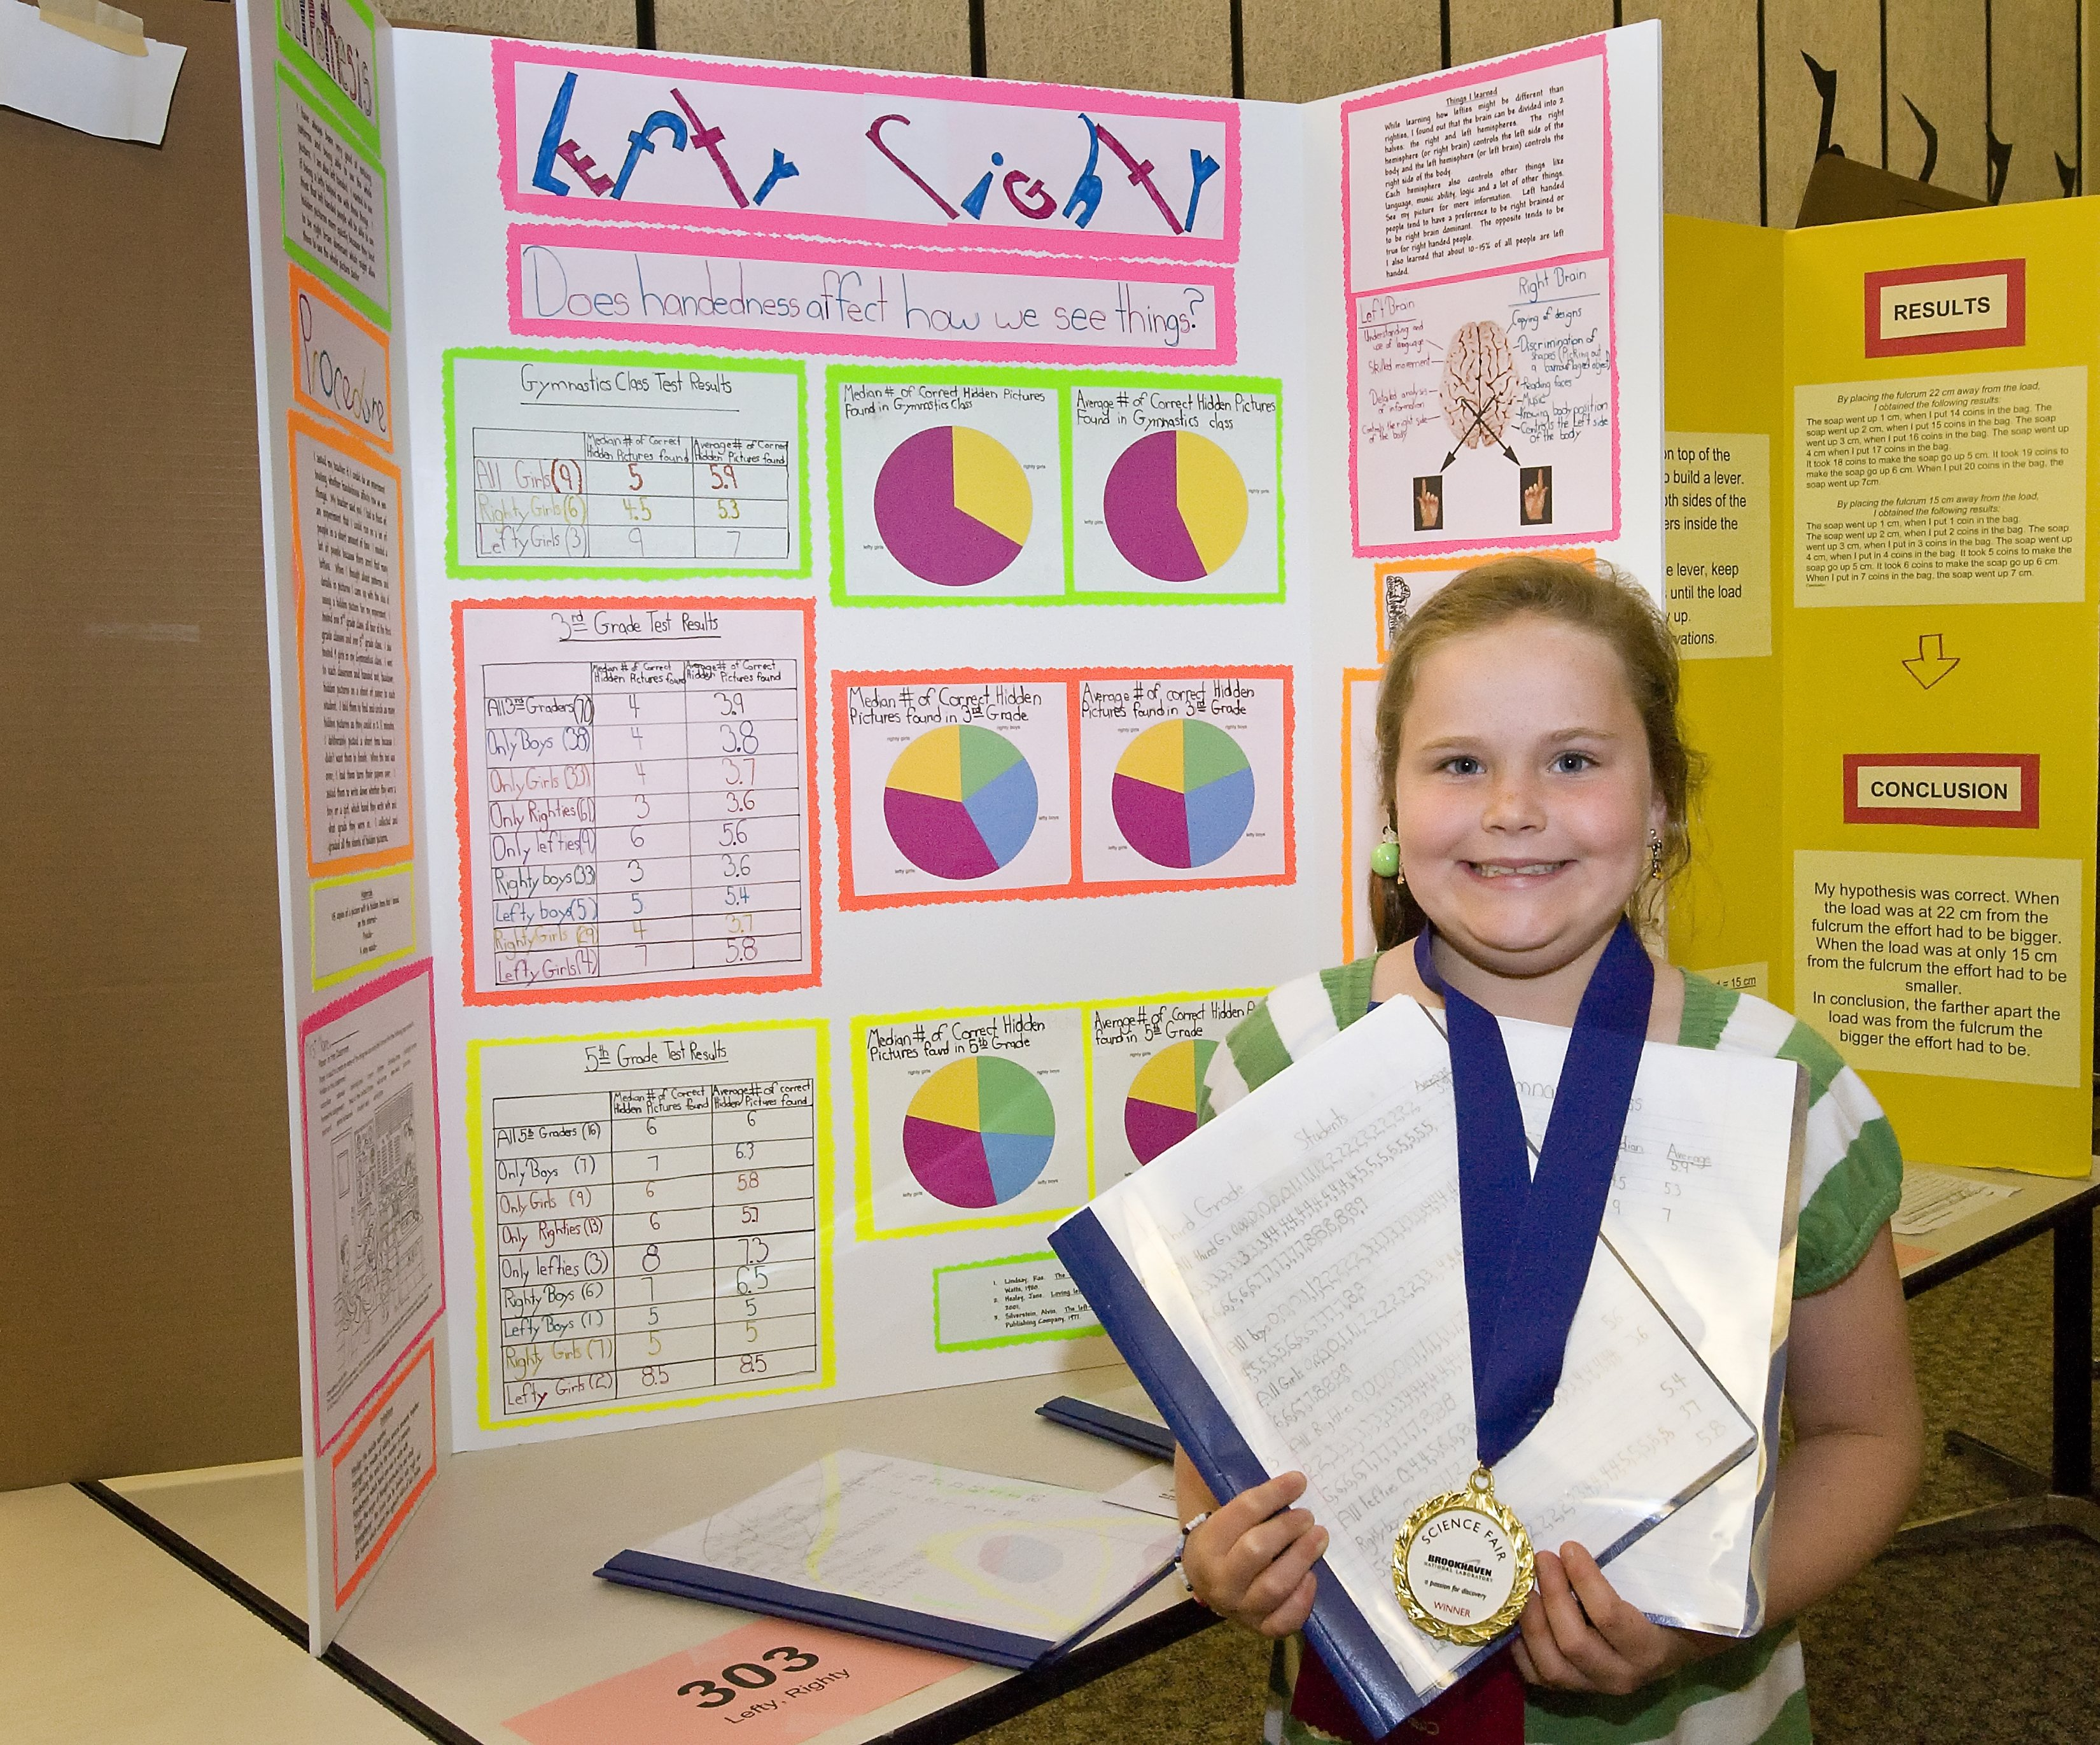 10 Attractive Ideas For 4Th Grade Science Projects useful 4th grade science projects sports on from ant control to wind 2020